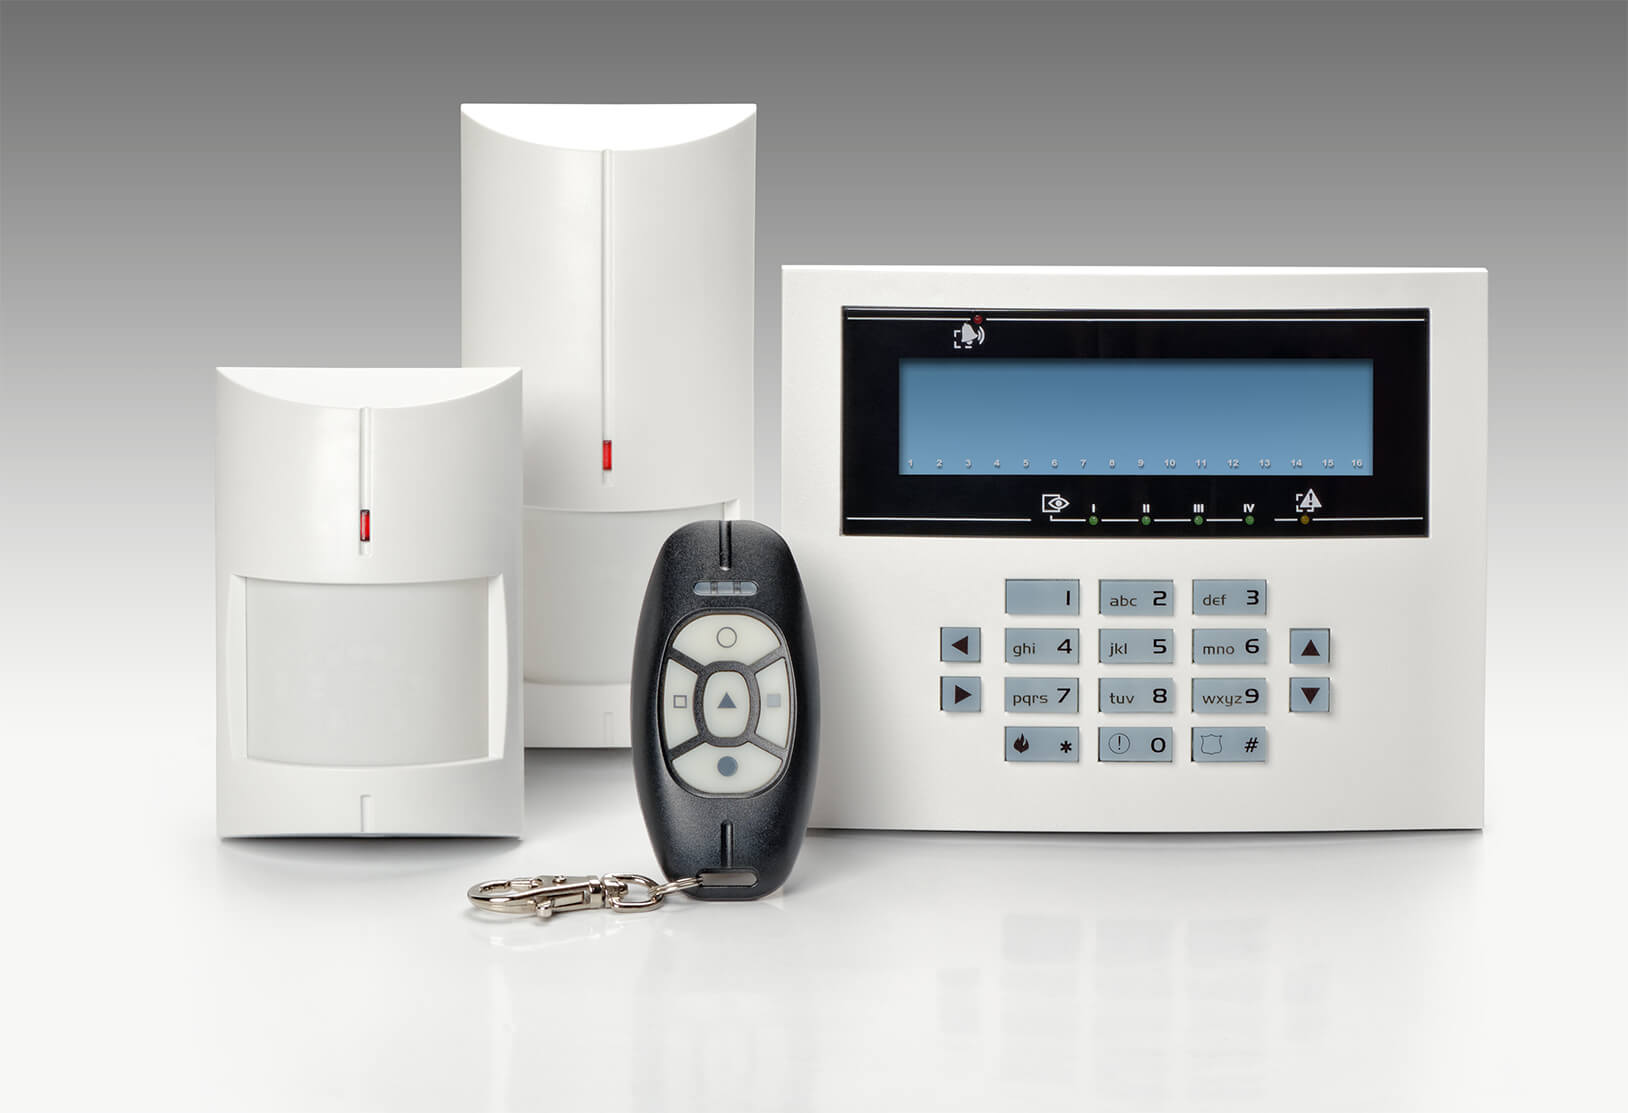 Business & Residential NACOSS Approved Burglar Alarms In Plumstead SE18 - Local Plumstead SE18 security company.Call 02078872244 - Dedicated to Safety & Security. Companies, shops and homes ..